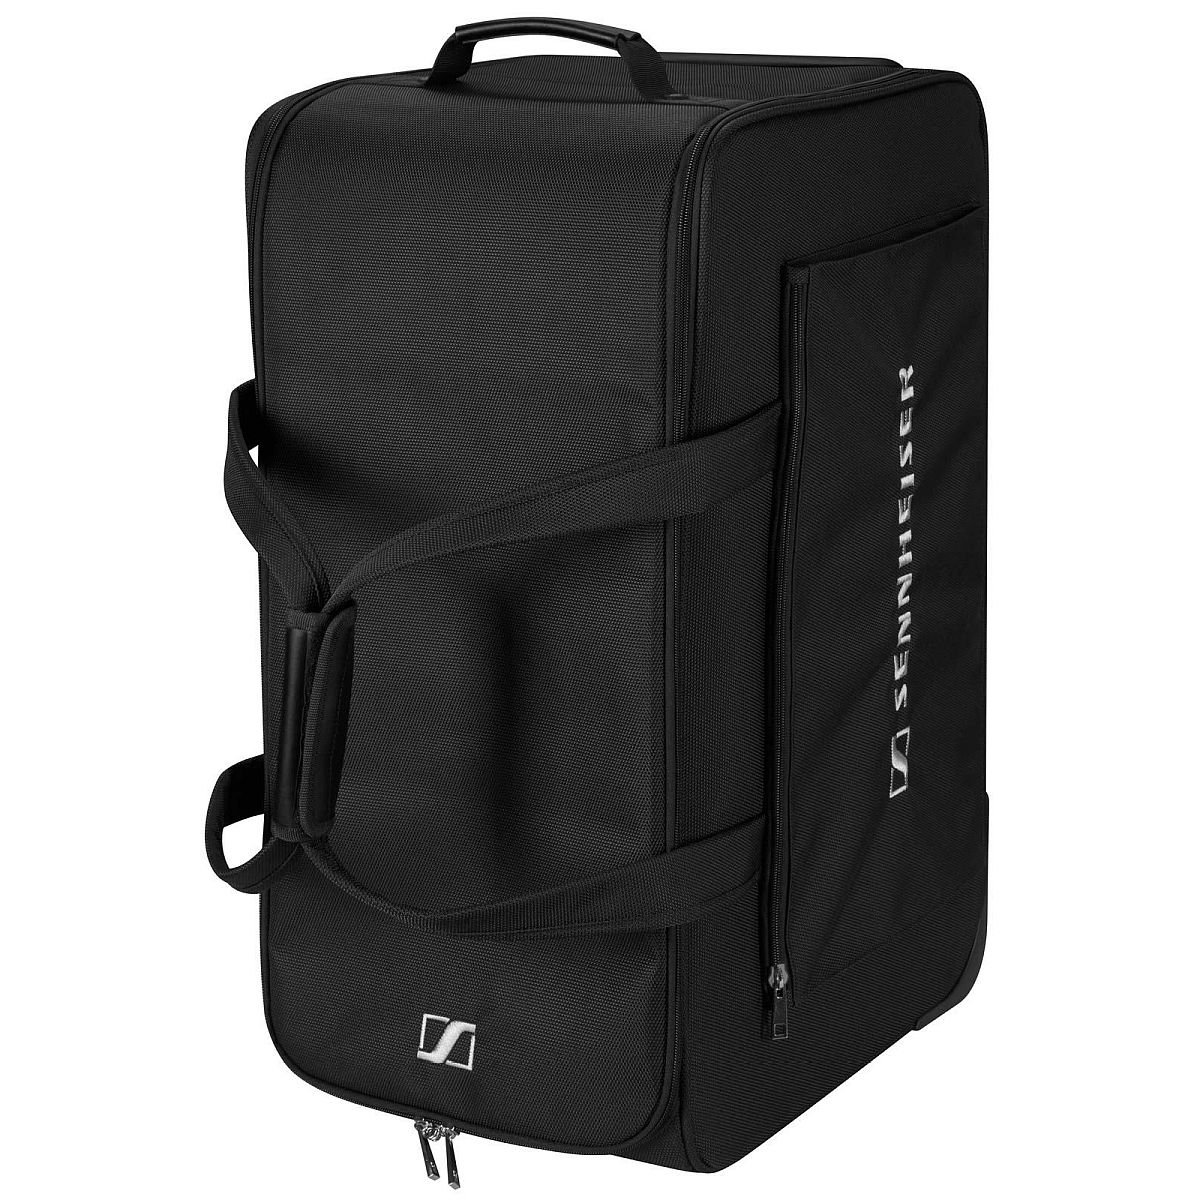 Sennheiser LAB 500 Trolley Bag Trolley Bag for Sennheiser LSP 500 Pro PA System Retractable Handle Outside Pockets Wheels